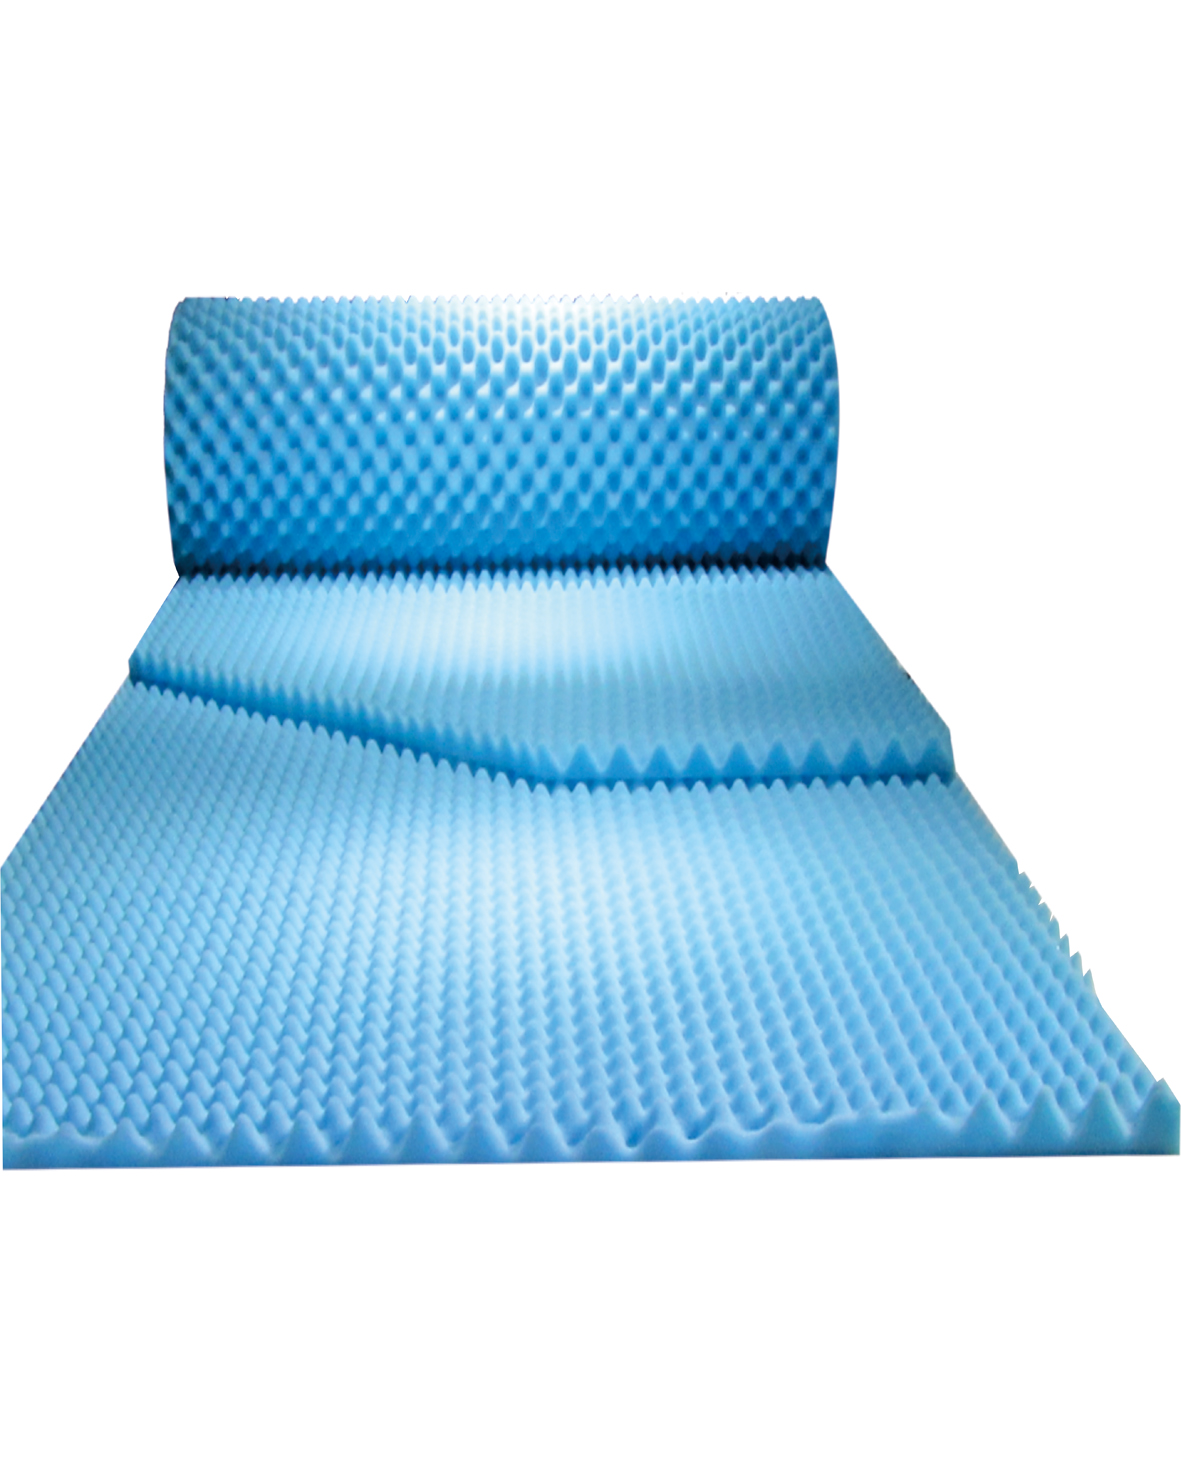 ORION CONVOLUTED MATTRESS OVERLAY